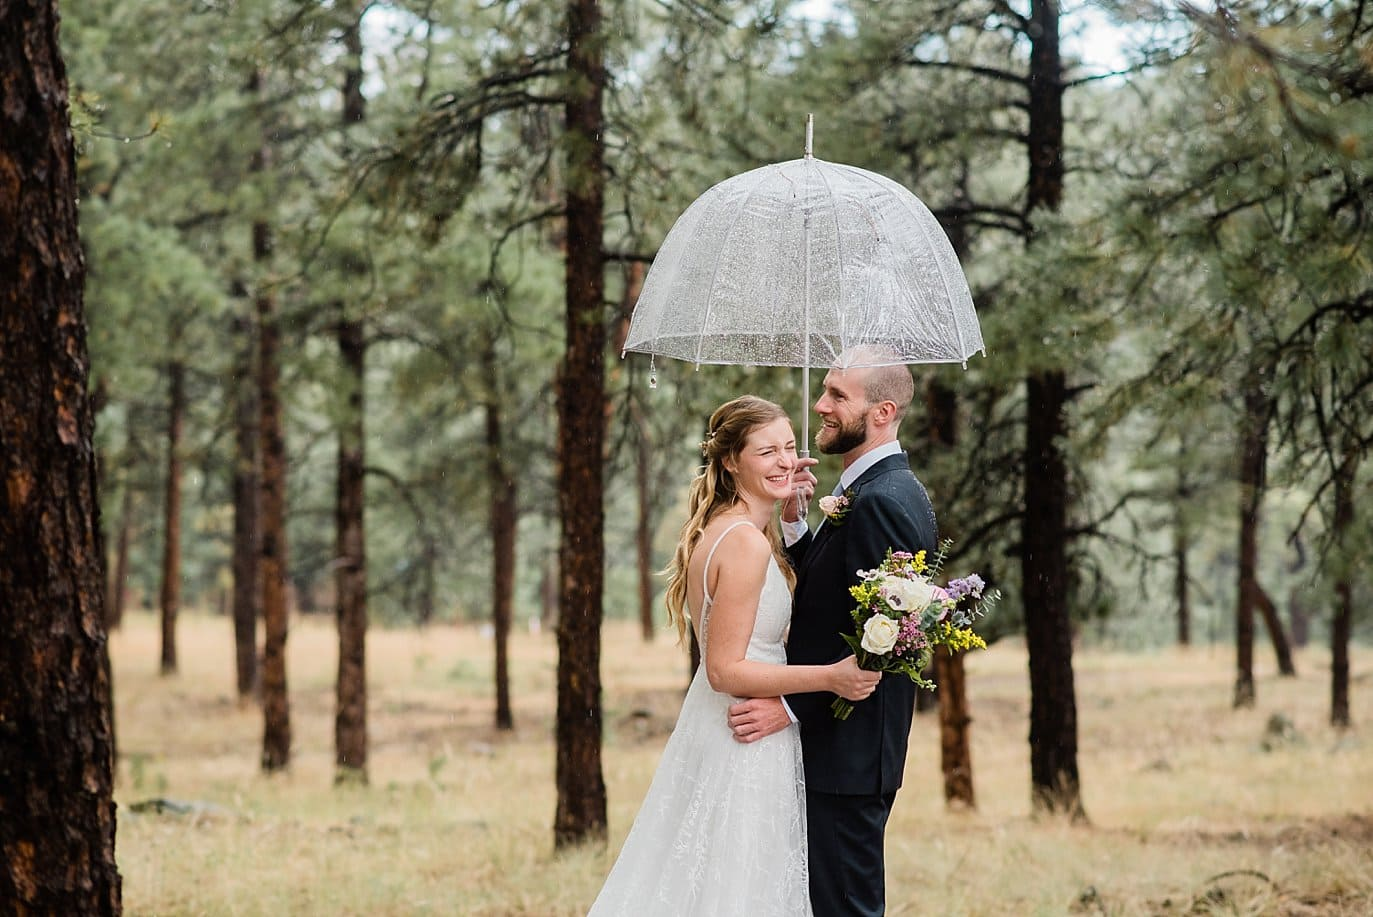 rainy bride and groom in evergreen trees